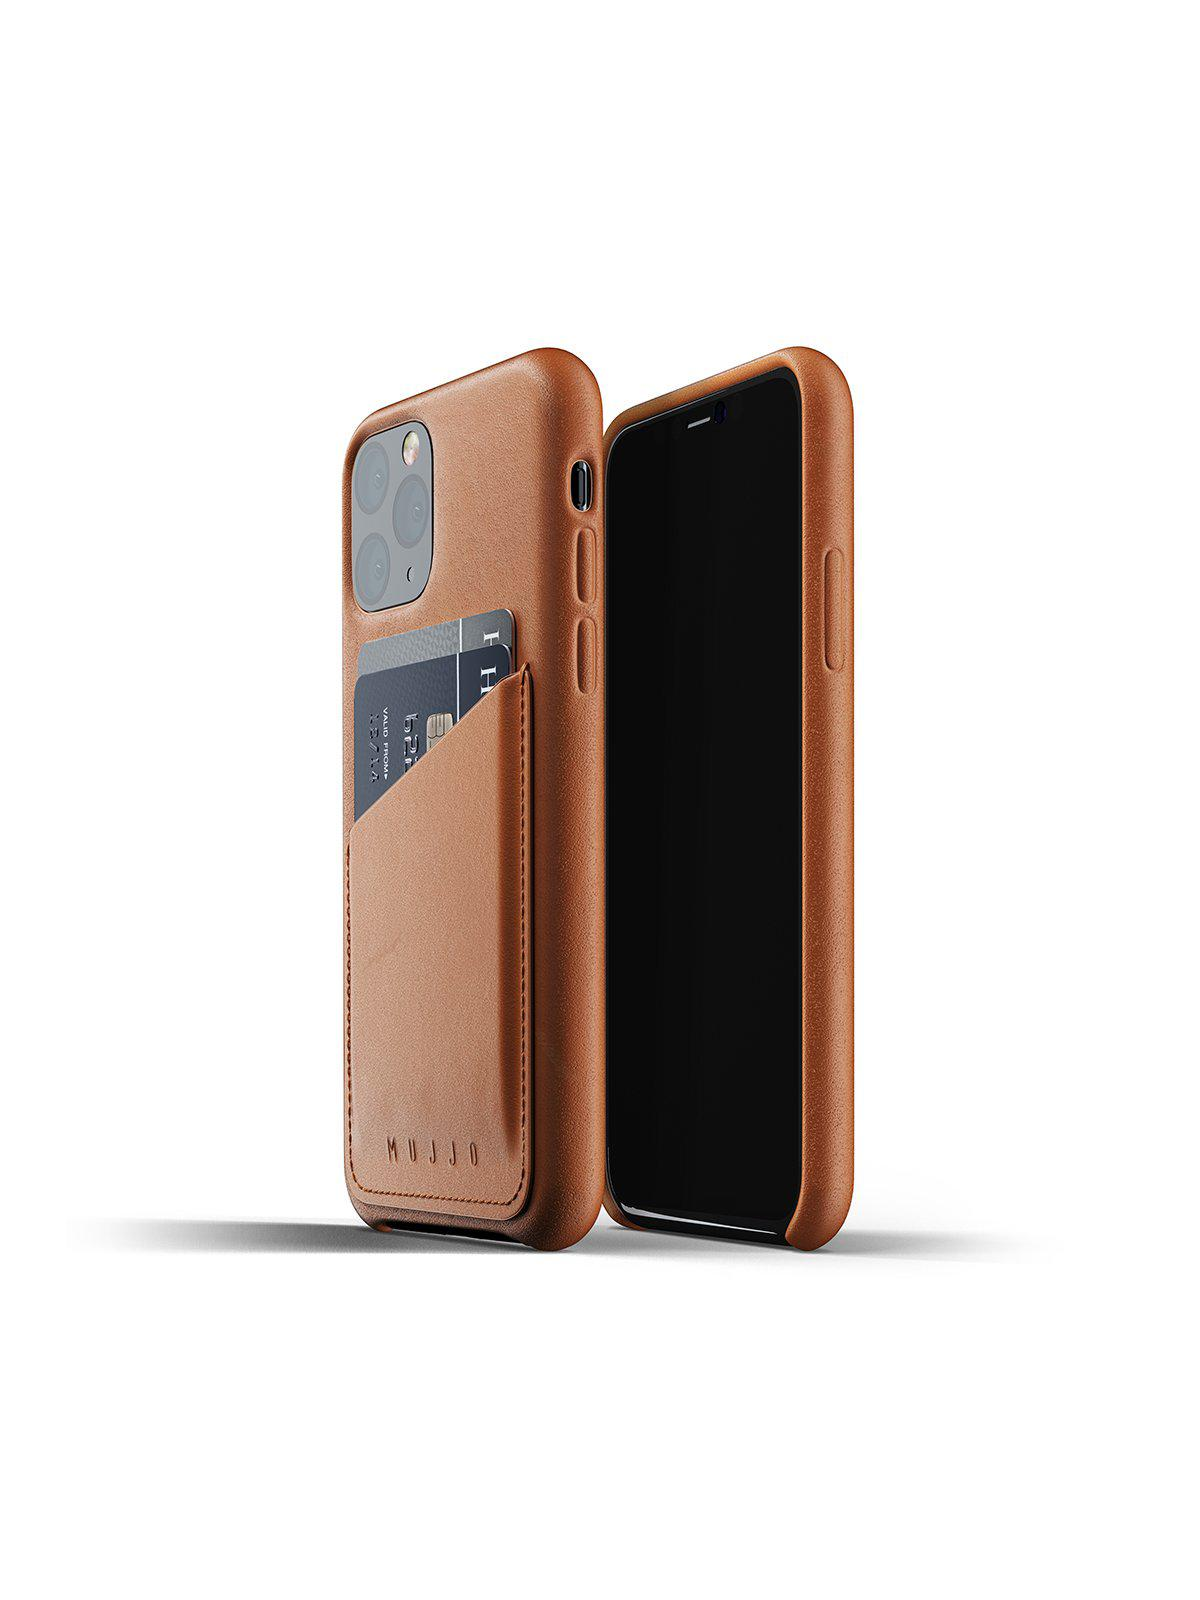 Mujjo Full Leather Wallet Case for iPhone 11 Pro Tan - MORE by Morello Indonesia